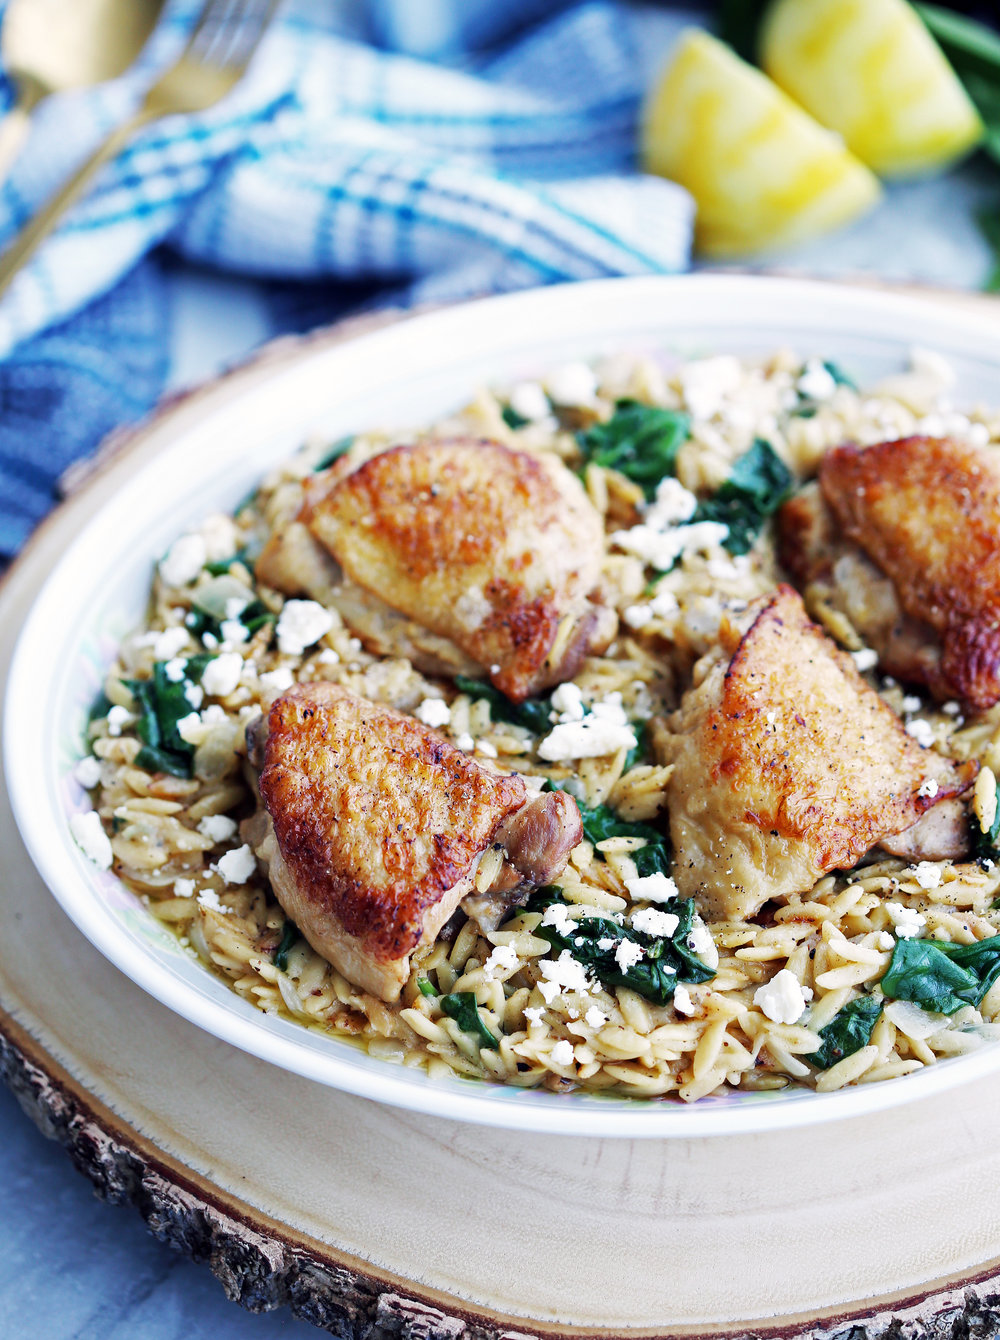 Crispy skin chicken thighs and lemon pepper orzo with feta and spinach on a large oval platter.